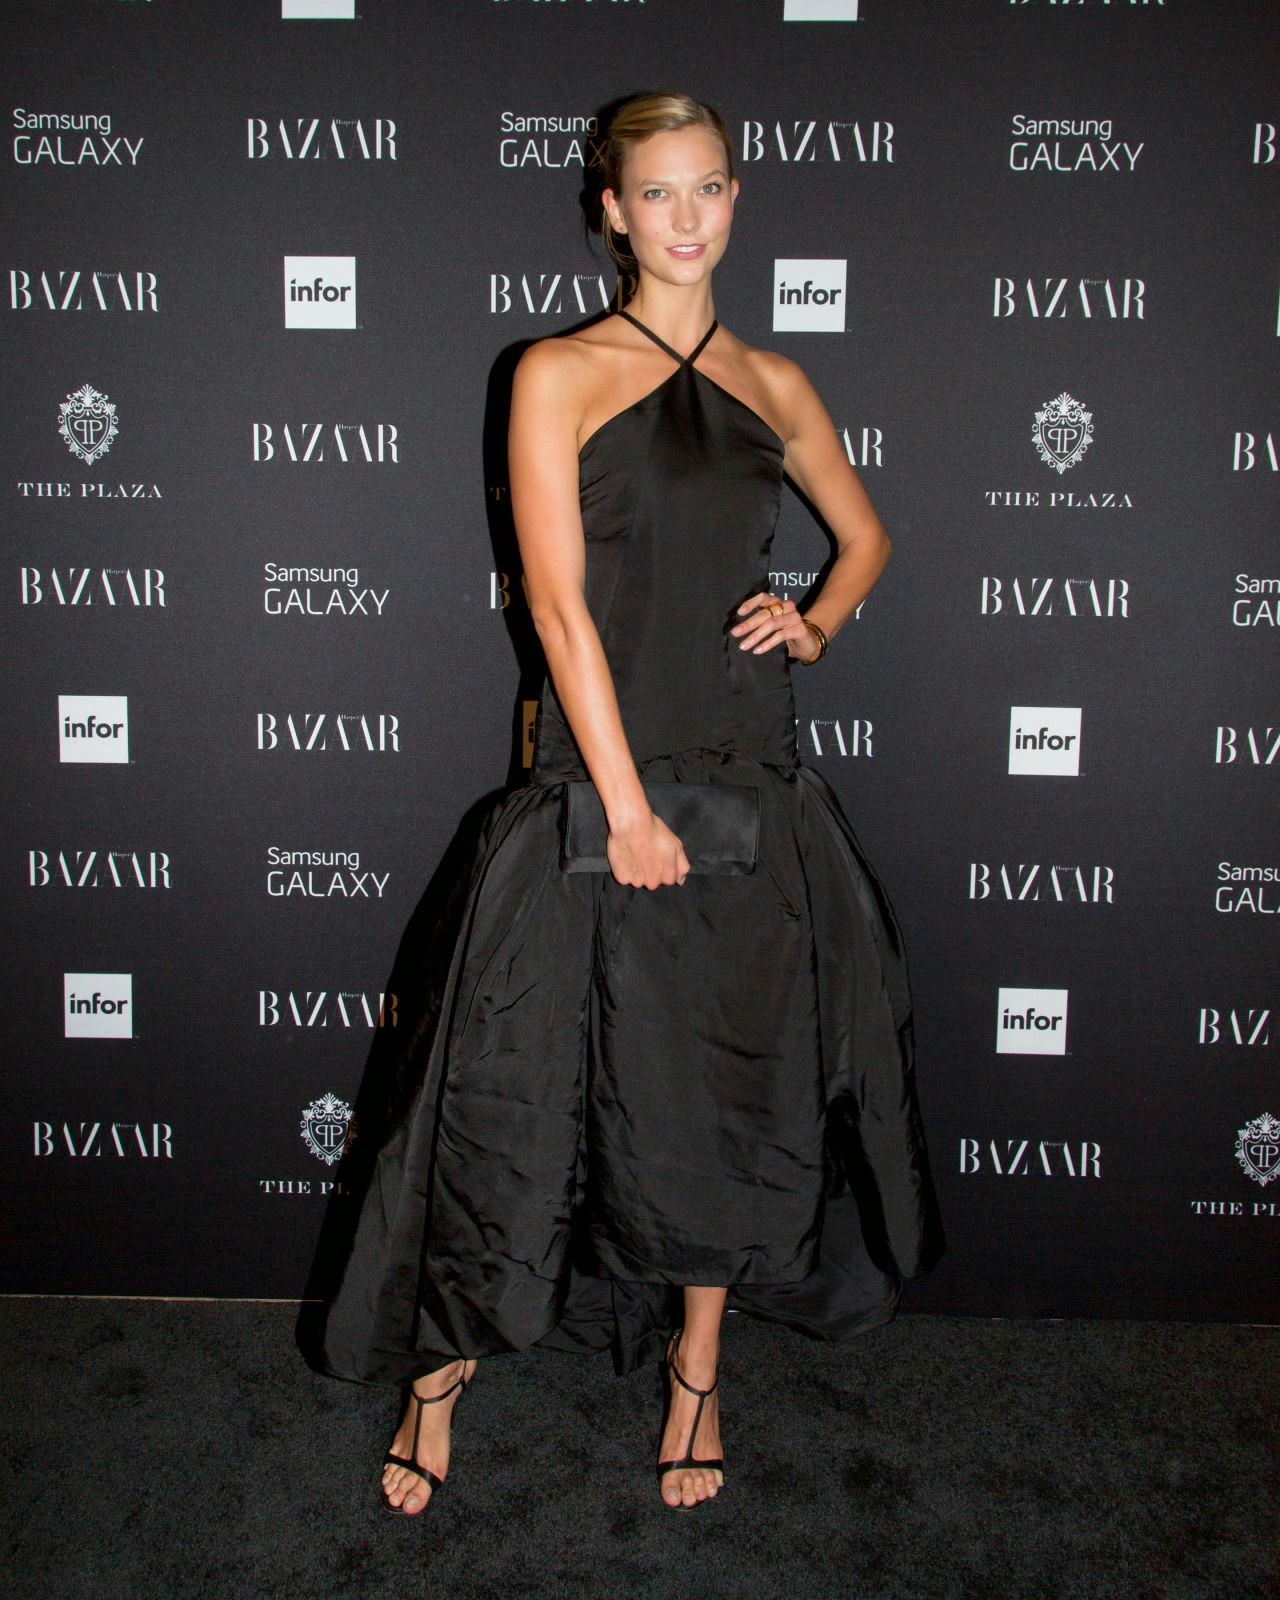 Karlie kloss was every bit the glamorous model she is for the elite party the victoria s secret model arrived looking elegant in a halter black dress with